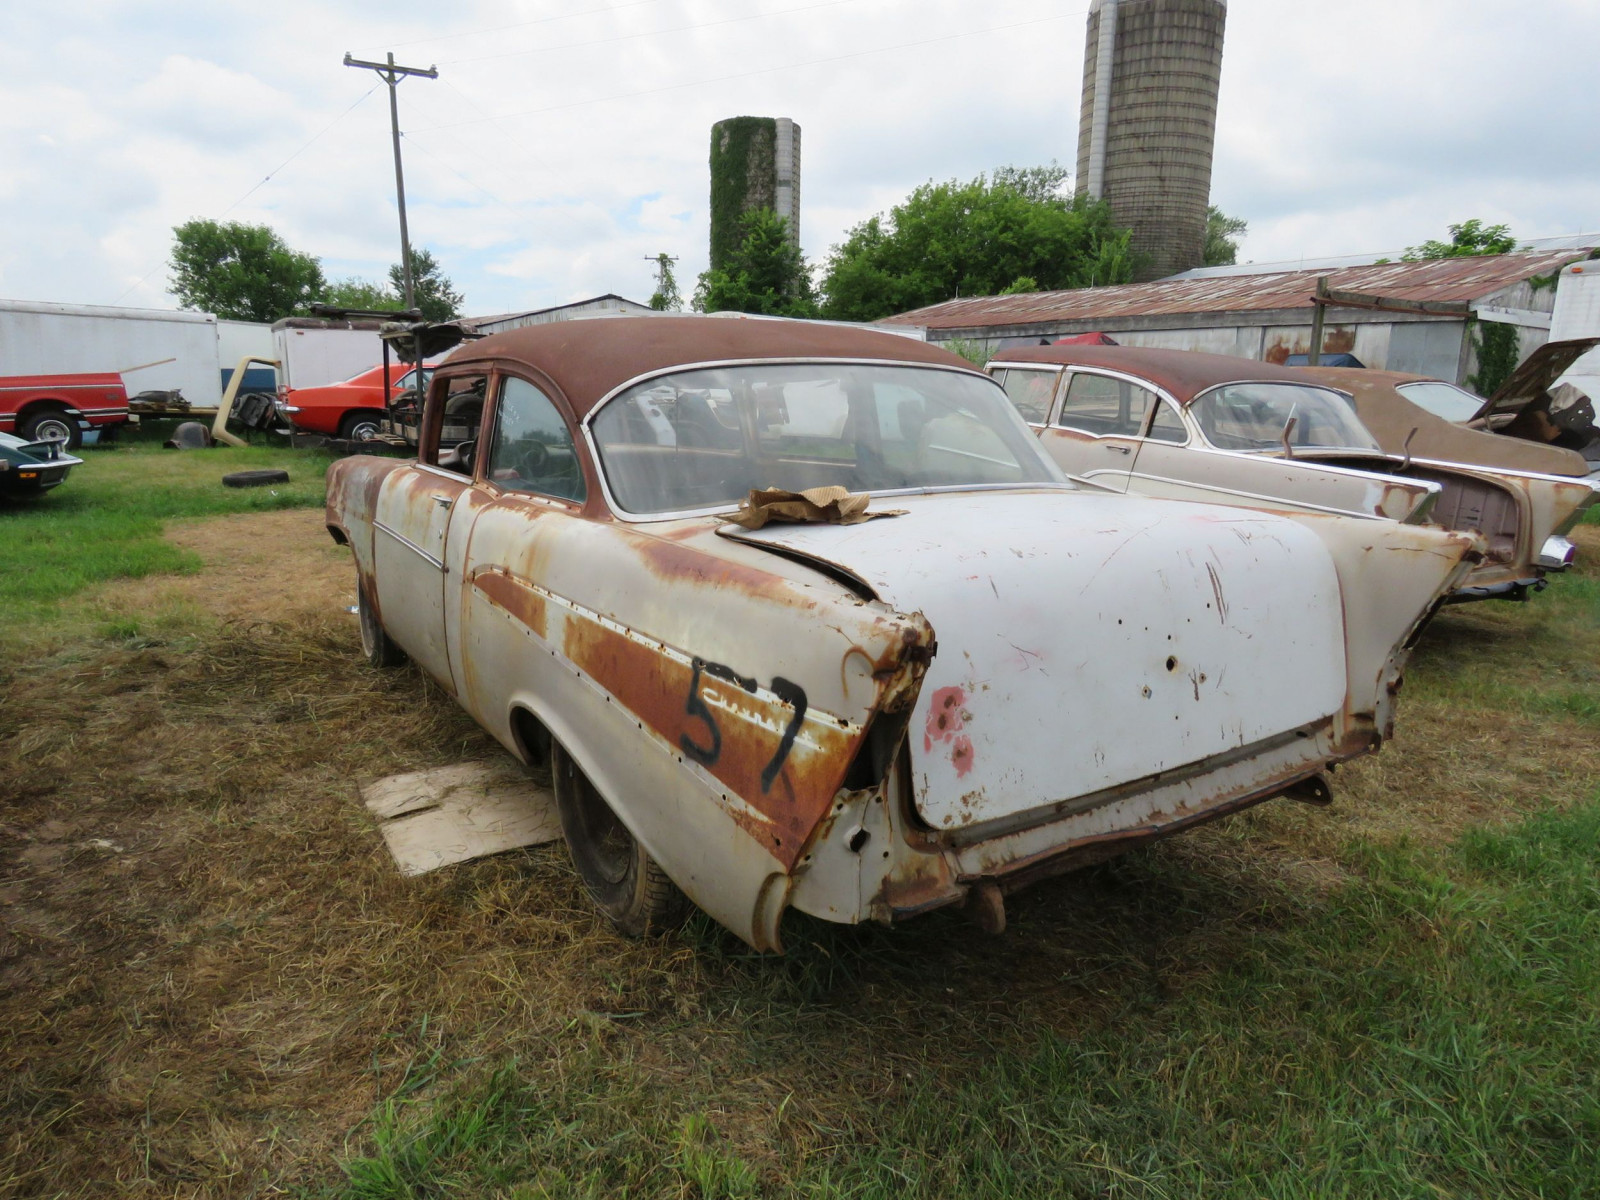 1957 2Dr Sedan Rolling Body for Rod or Restore - Image 5